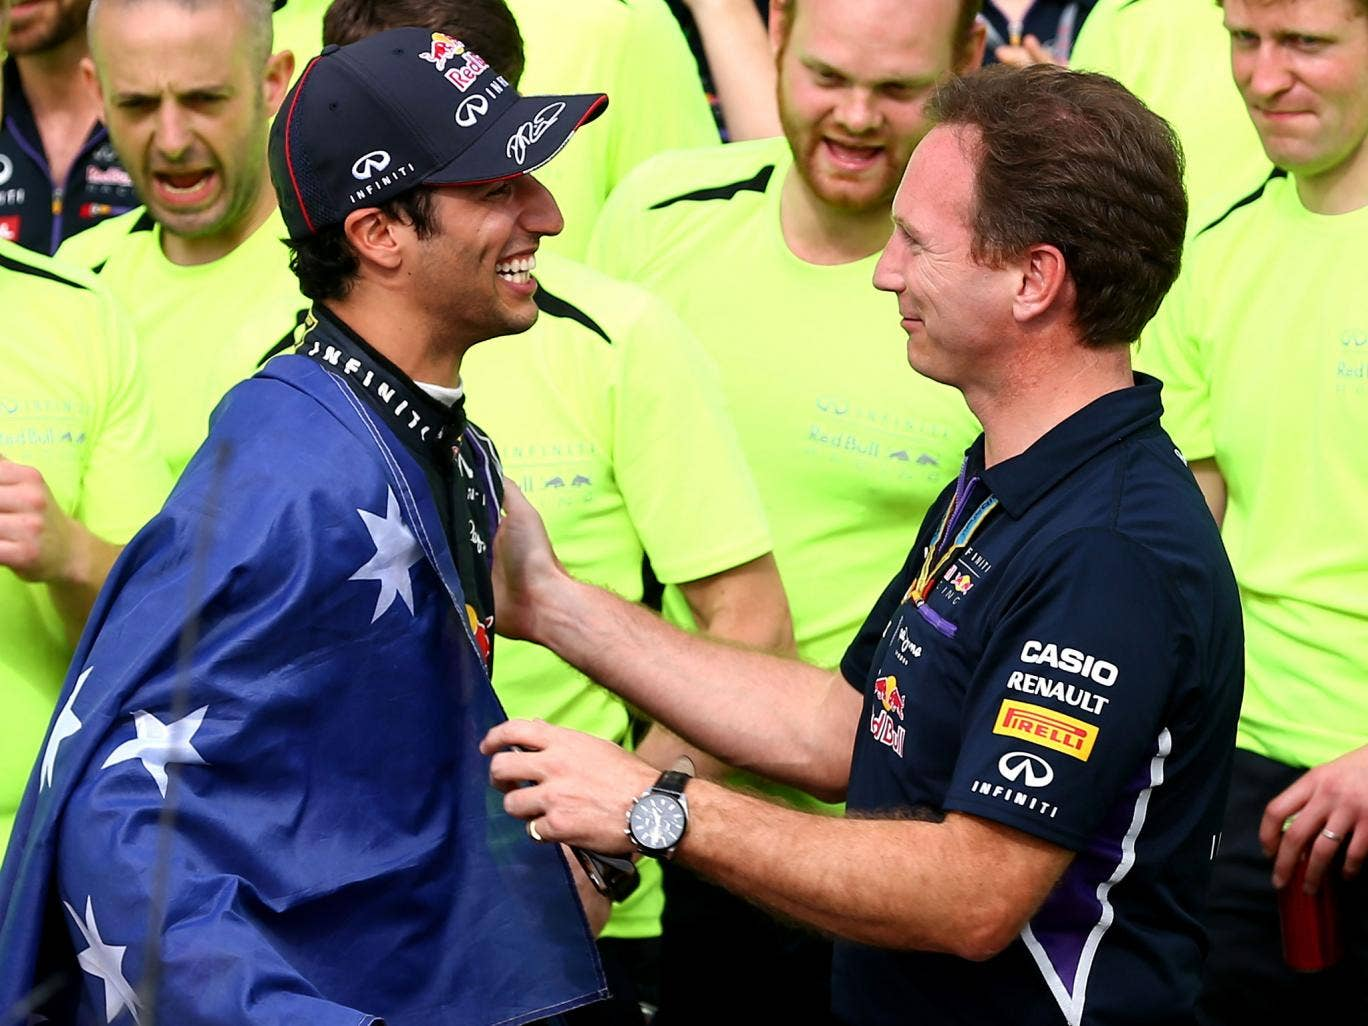 Daniel Ricciardo and Christian Horner celebrate the Canadian Grand Prix victory